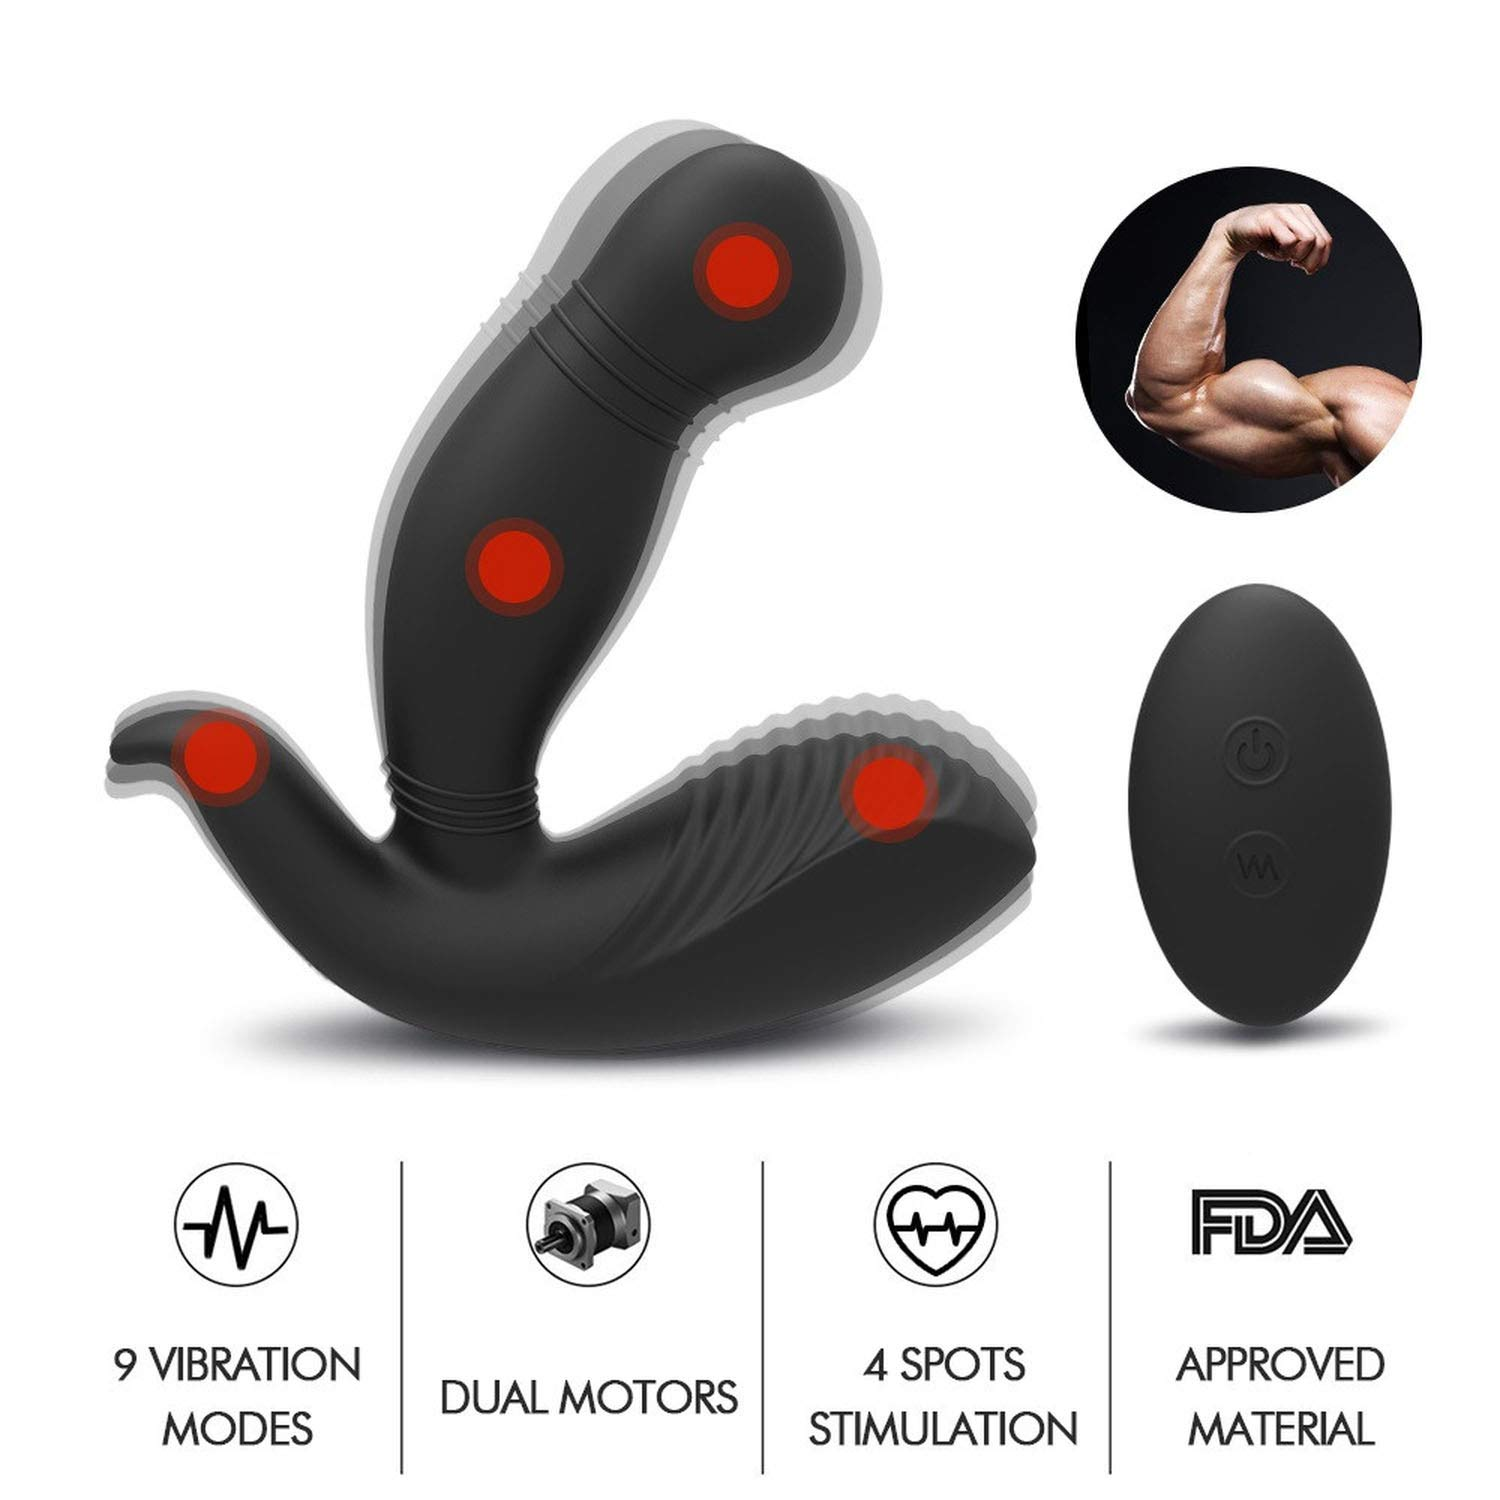 Wireless remote controlled anal toy stores yes final